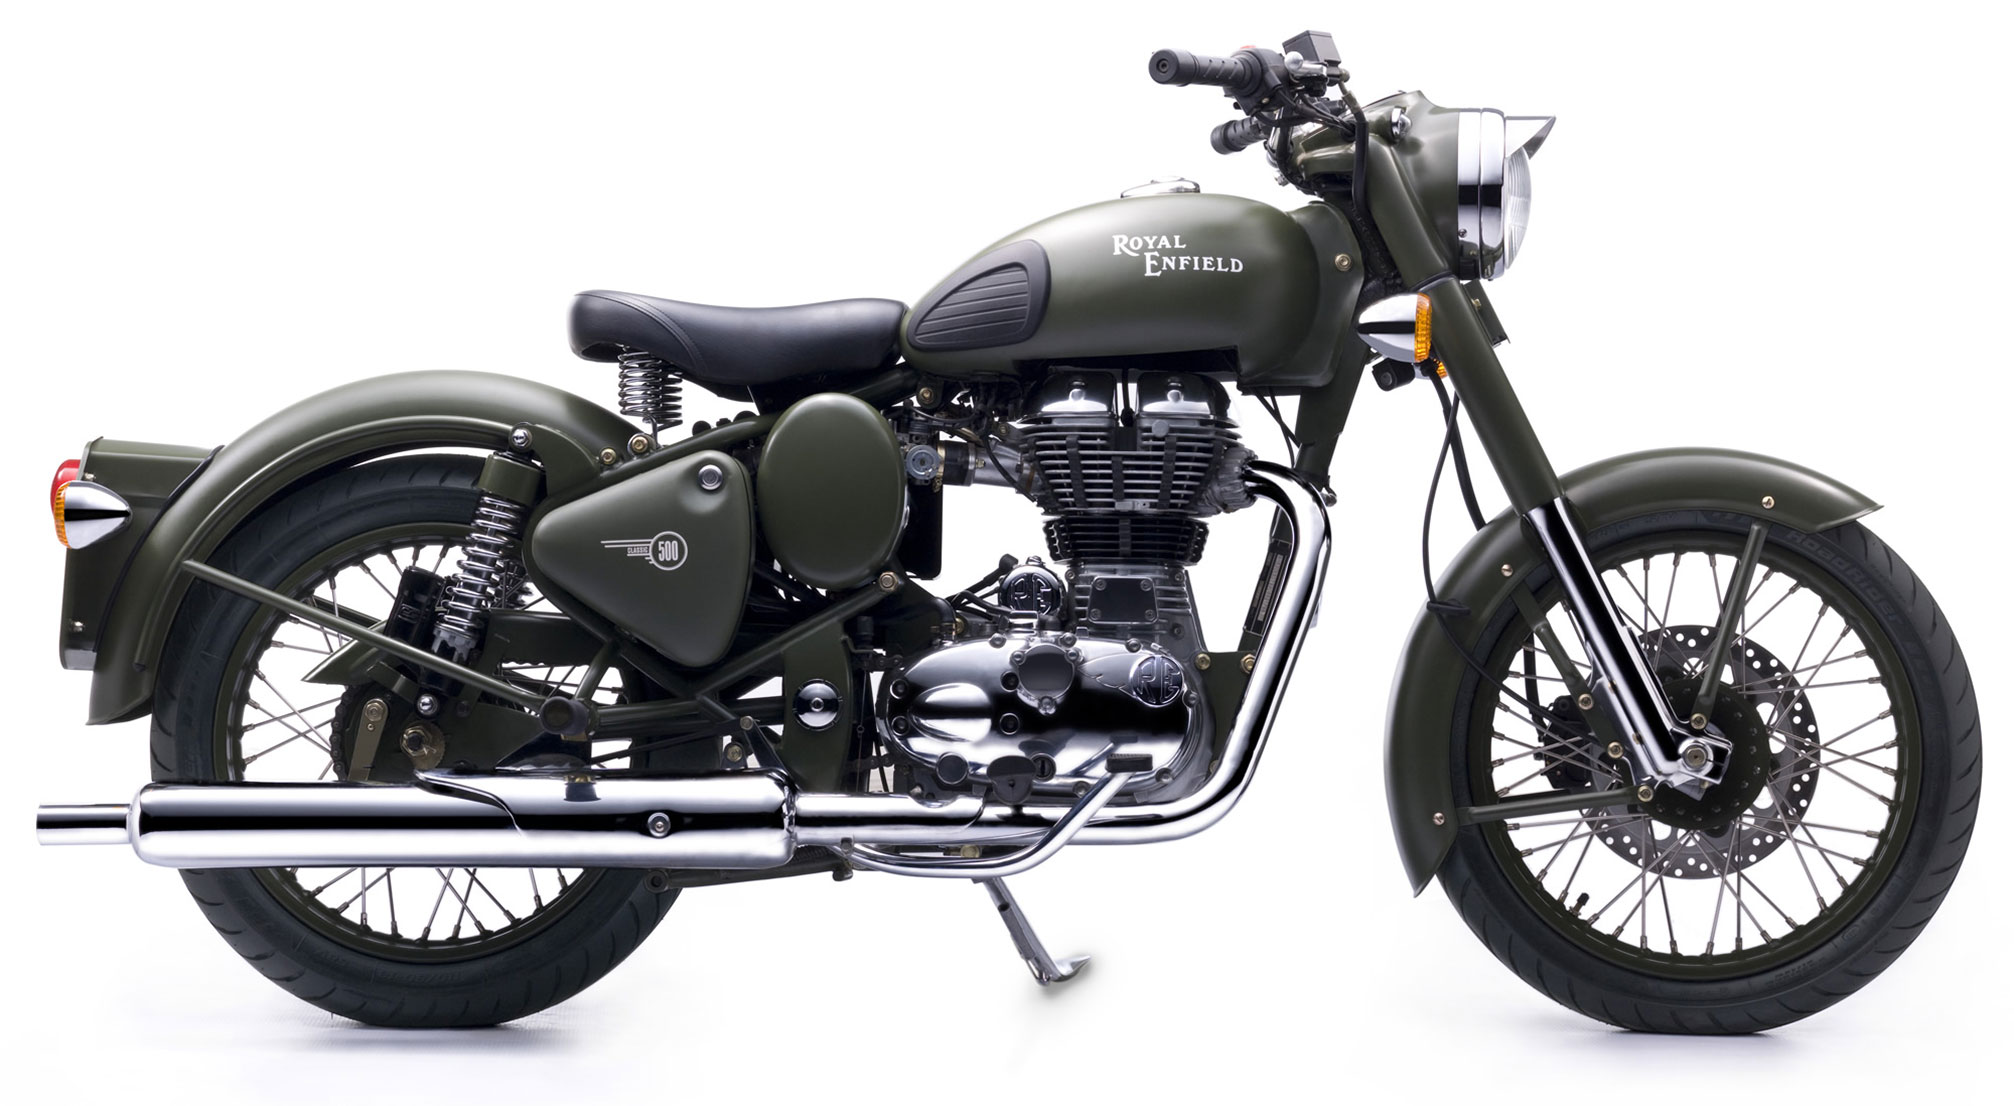 Royal enfield bullet pictures - 2014 Royal Enfield Bullet C5 Military